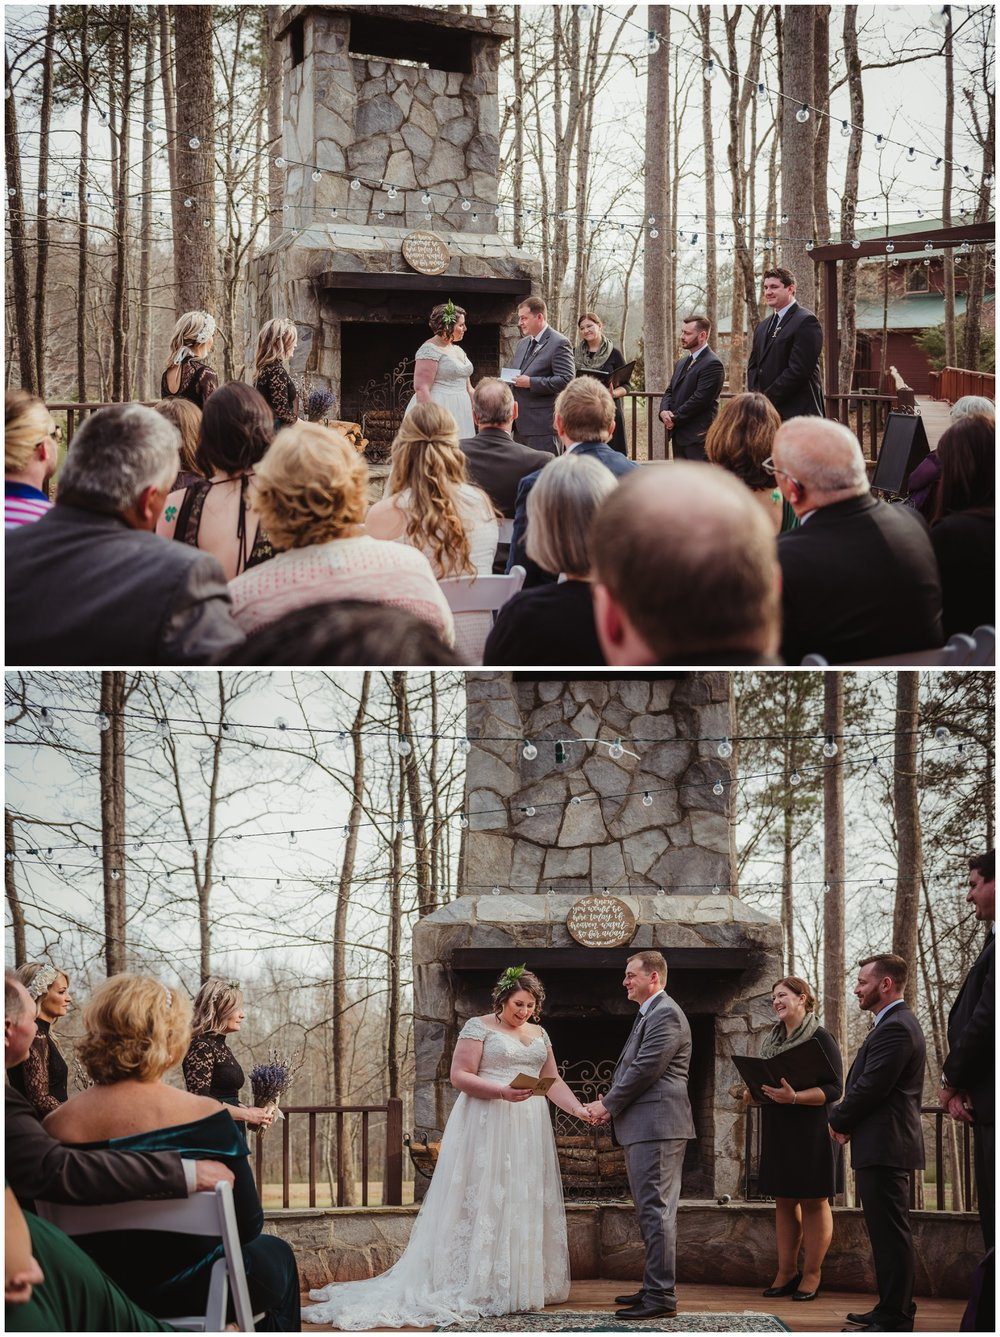 The bride and groom exchanging their vows on their wedding day at the Barn at Valhalla in Chapel Hill, taken by Rose Trail Images.